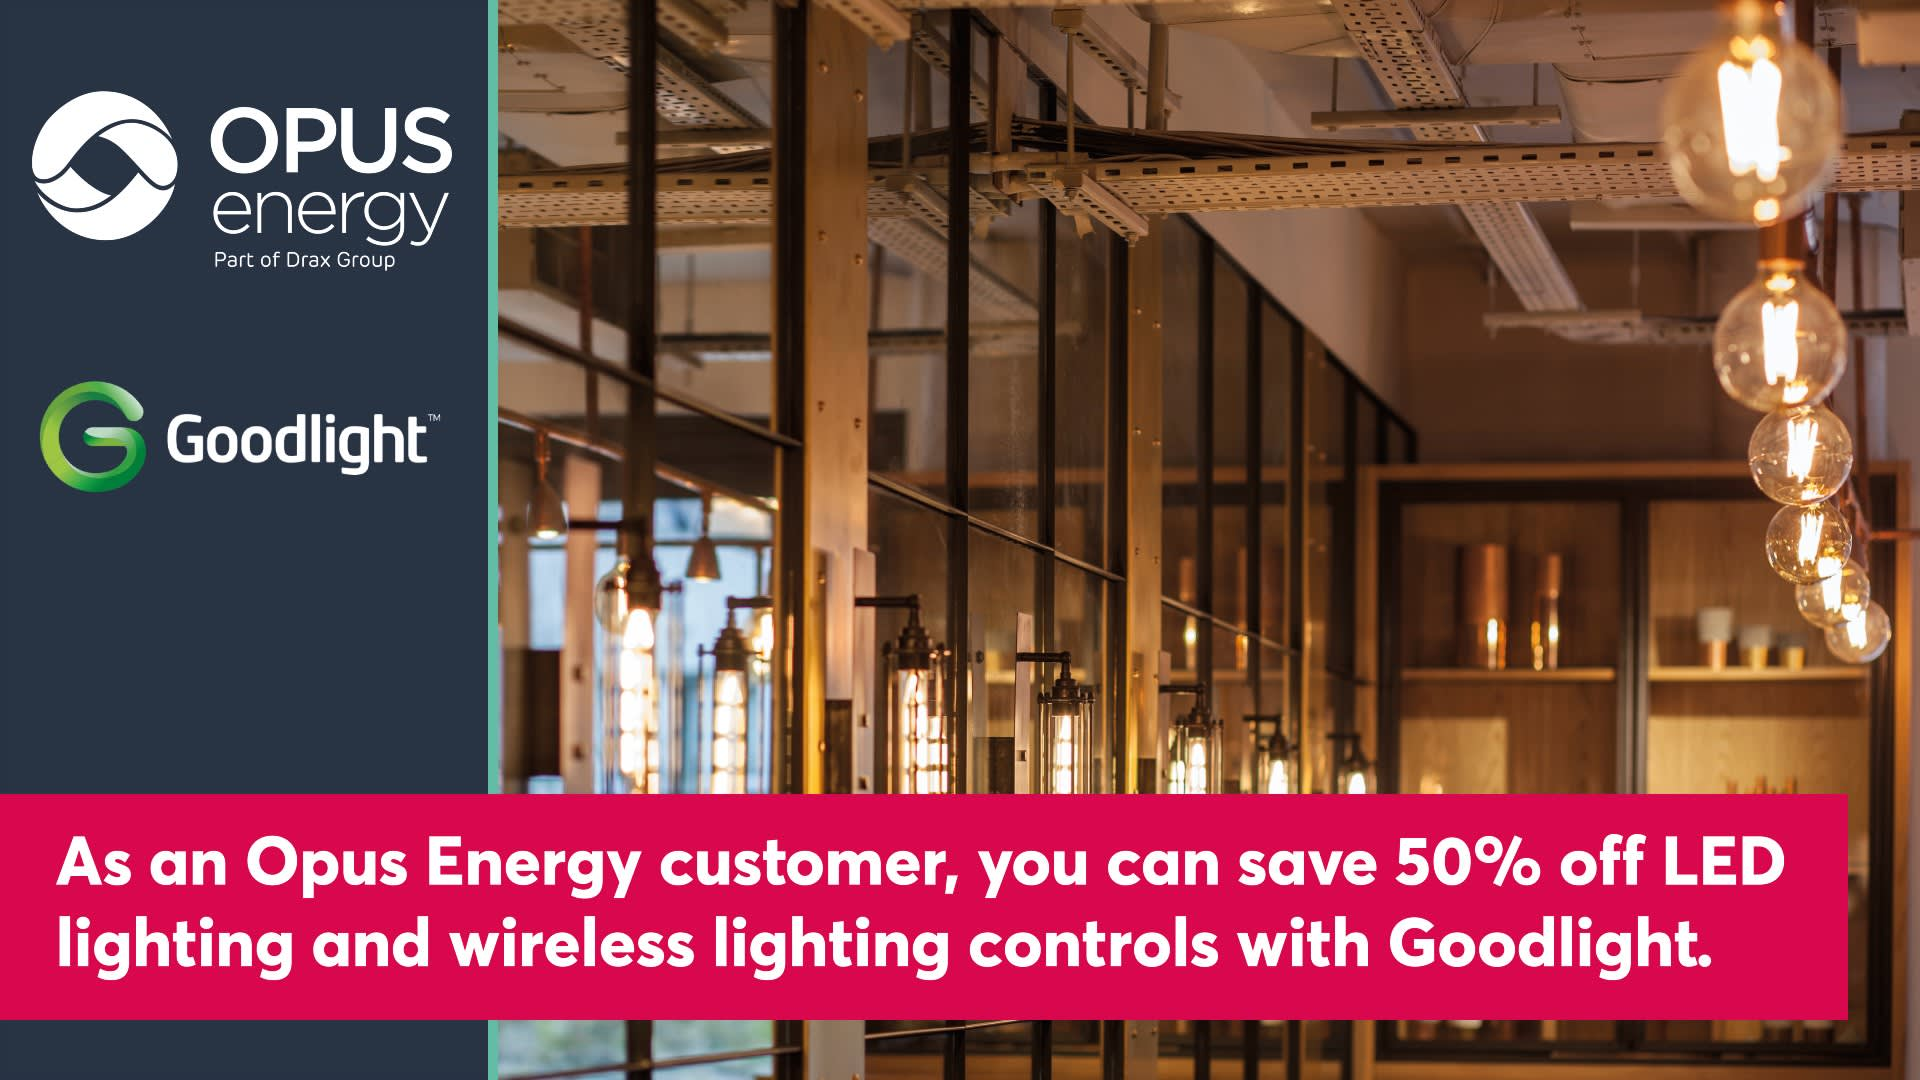 Opus Energy partners with Goodlight to bring discounted LED lighting to customers - Hero Image